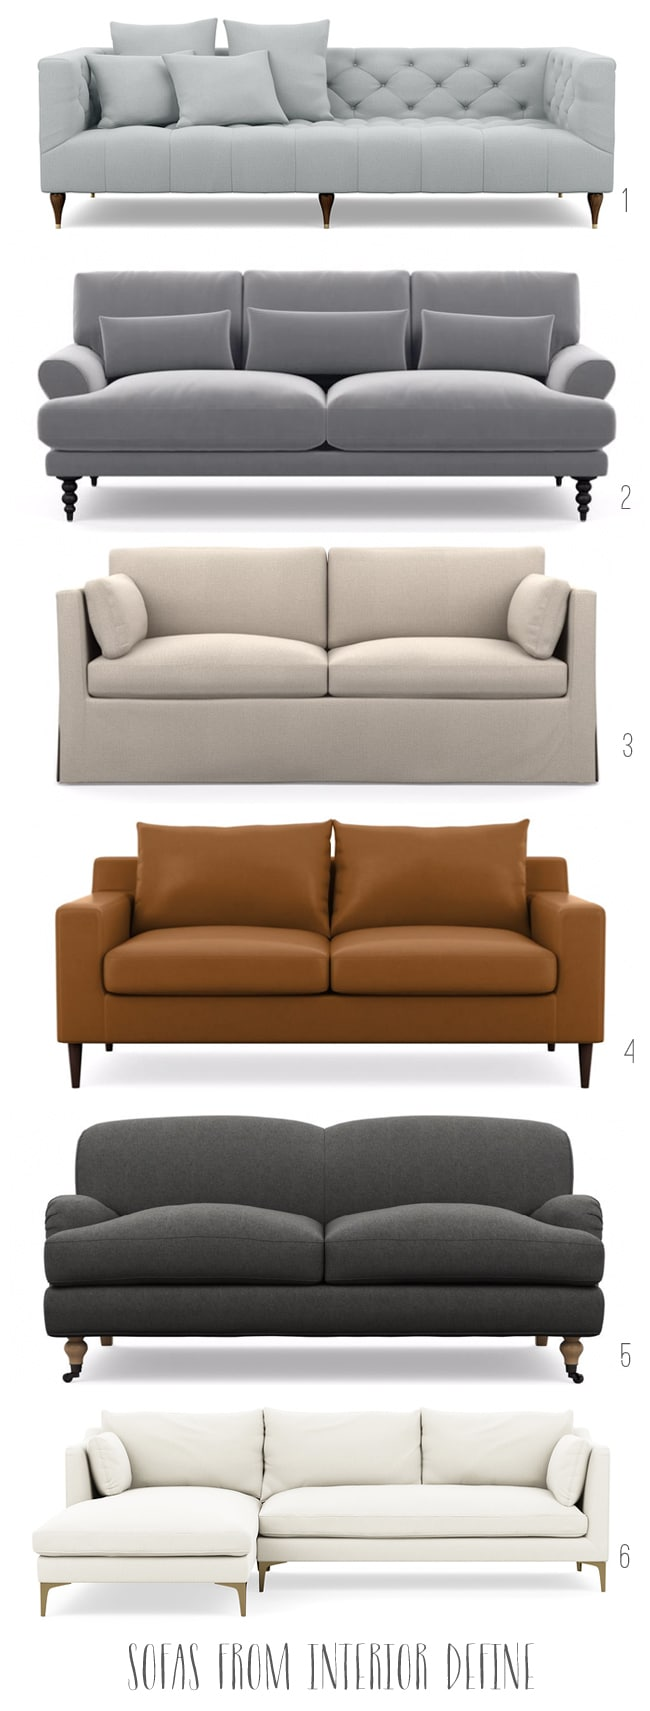 Our Sectional - Interior Define